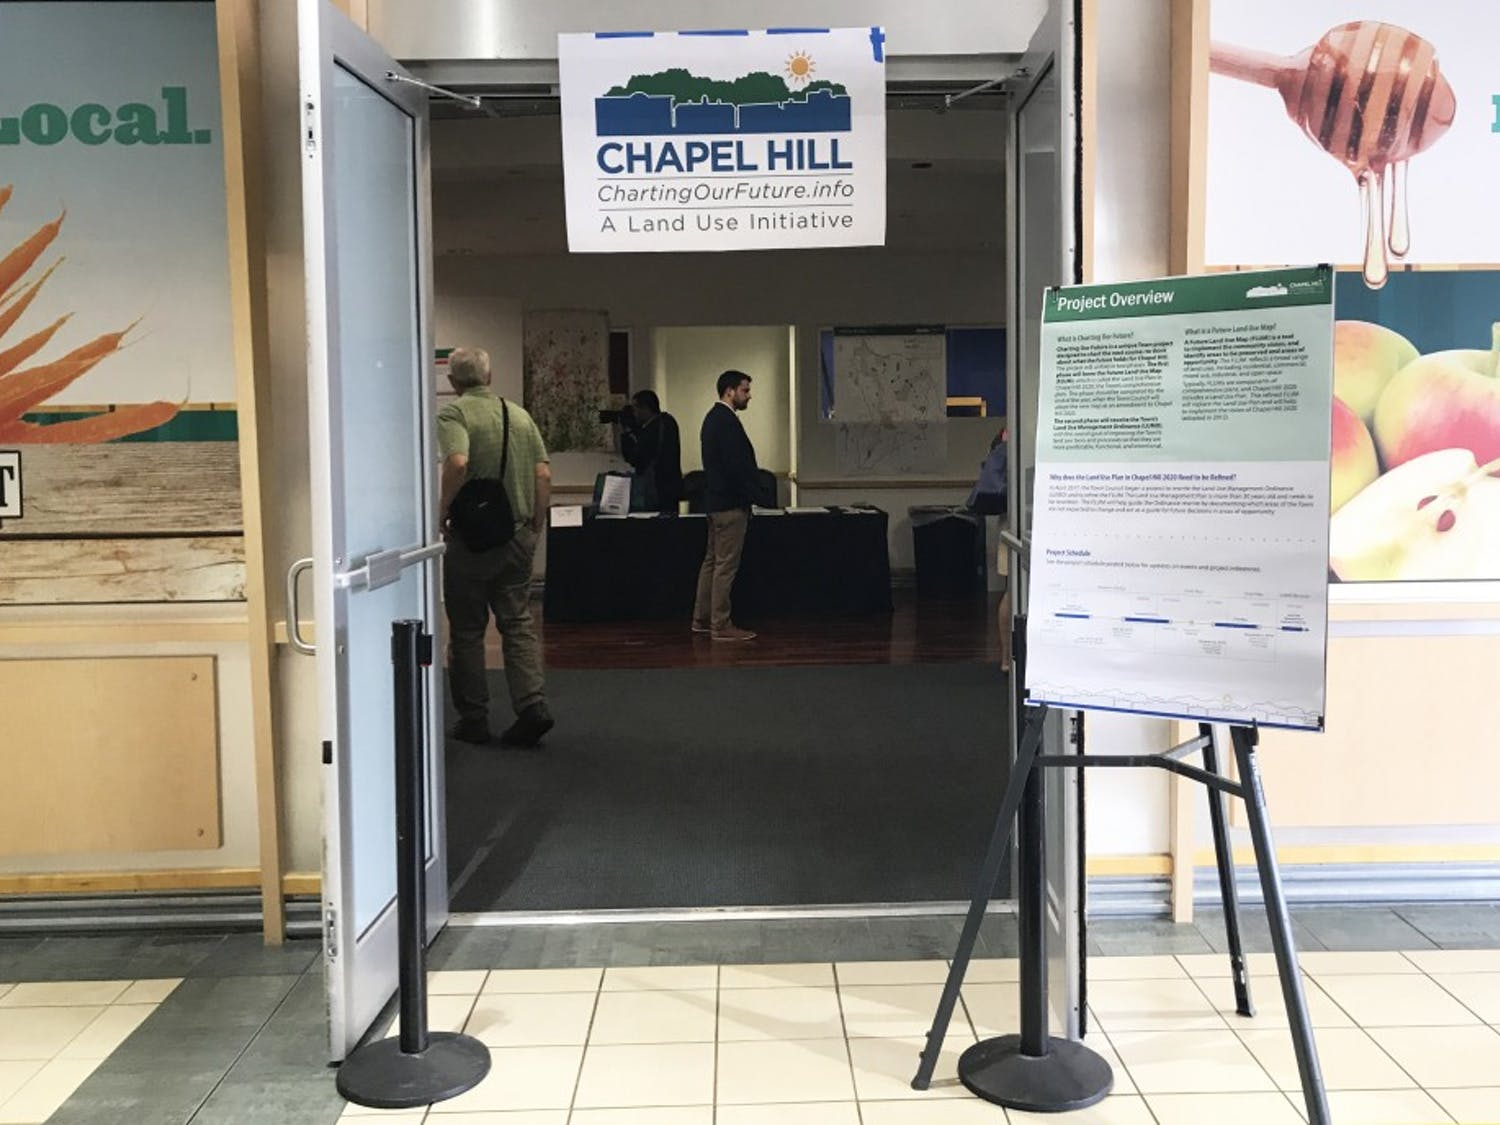 The Town of Chapel Hill hosted a show-and-tell to receive community input as part of the Charting Our Future initiative.